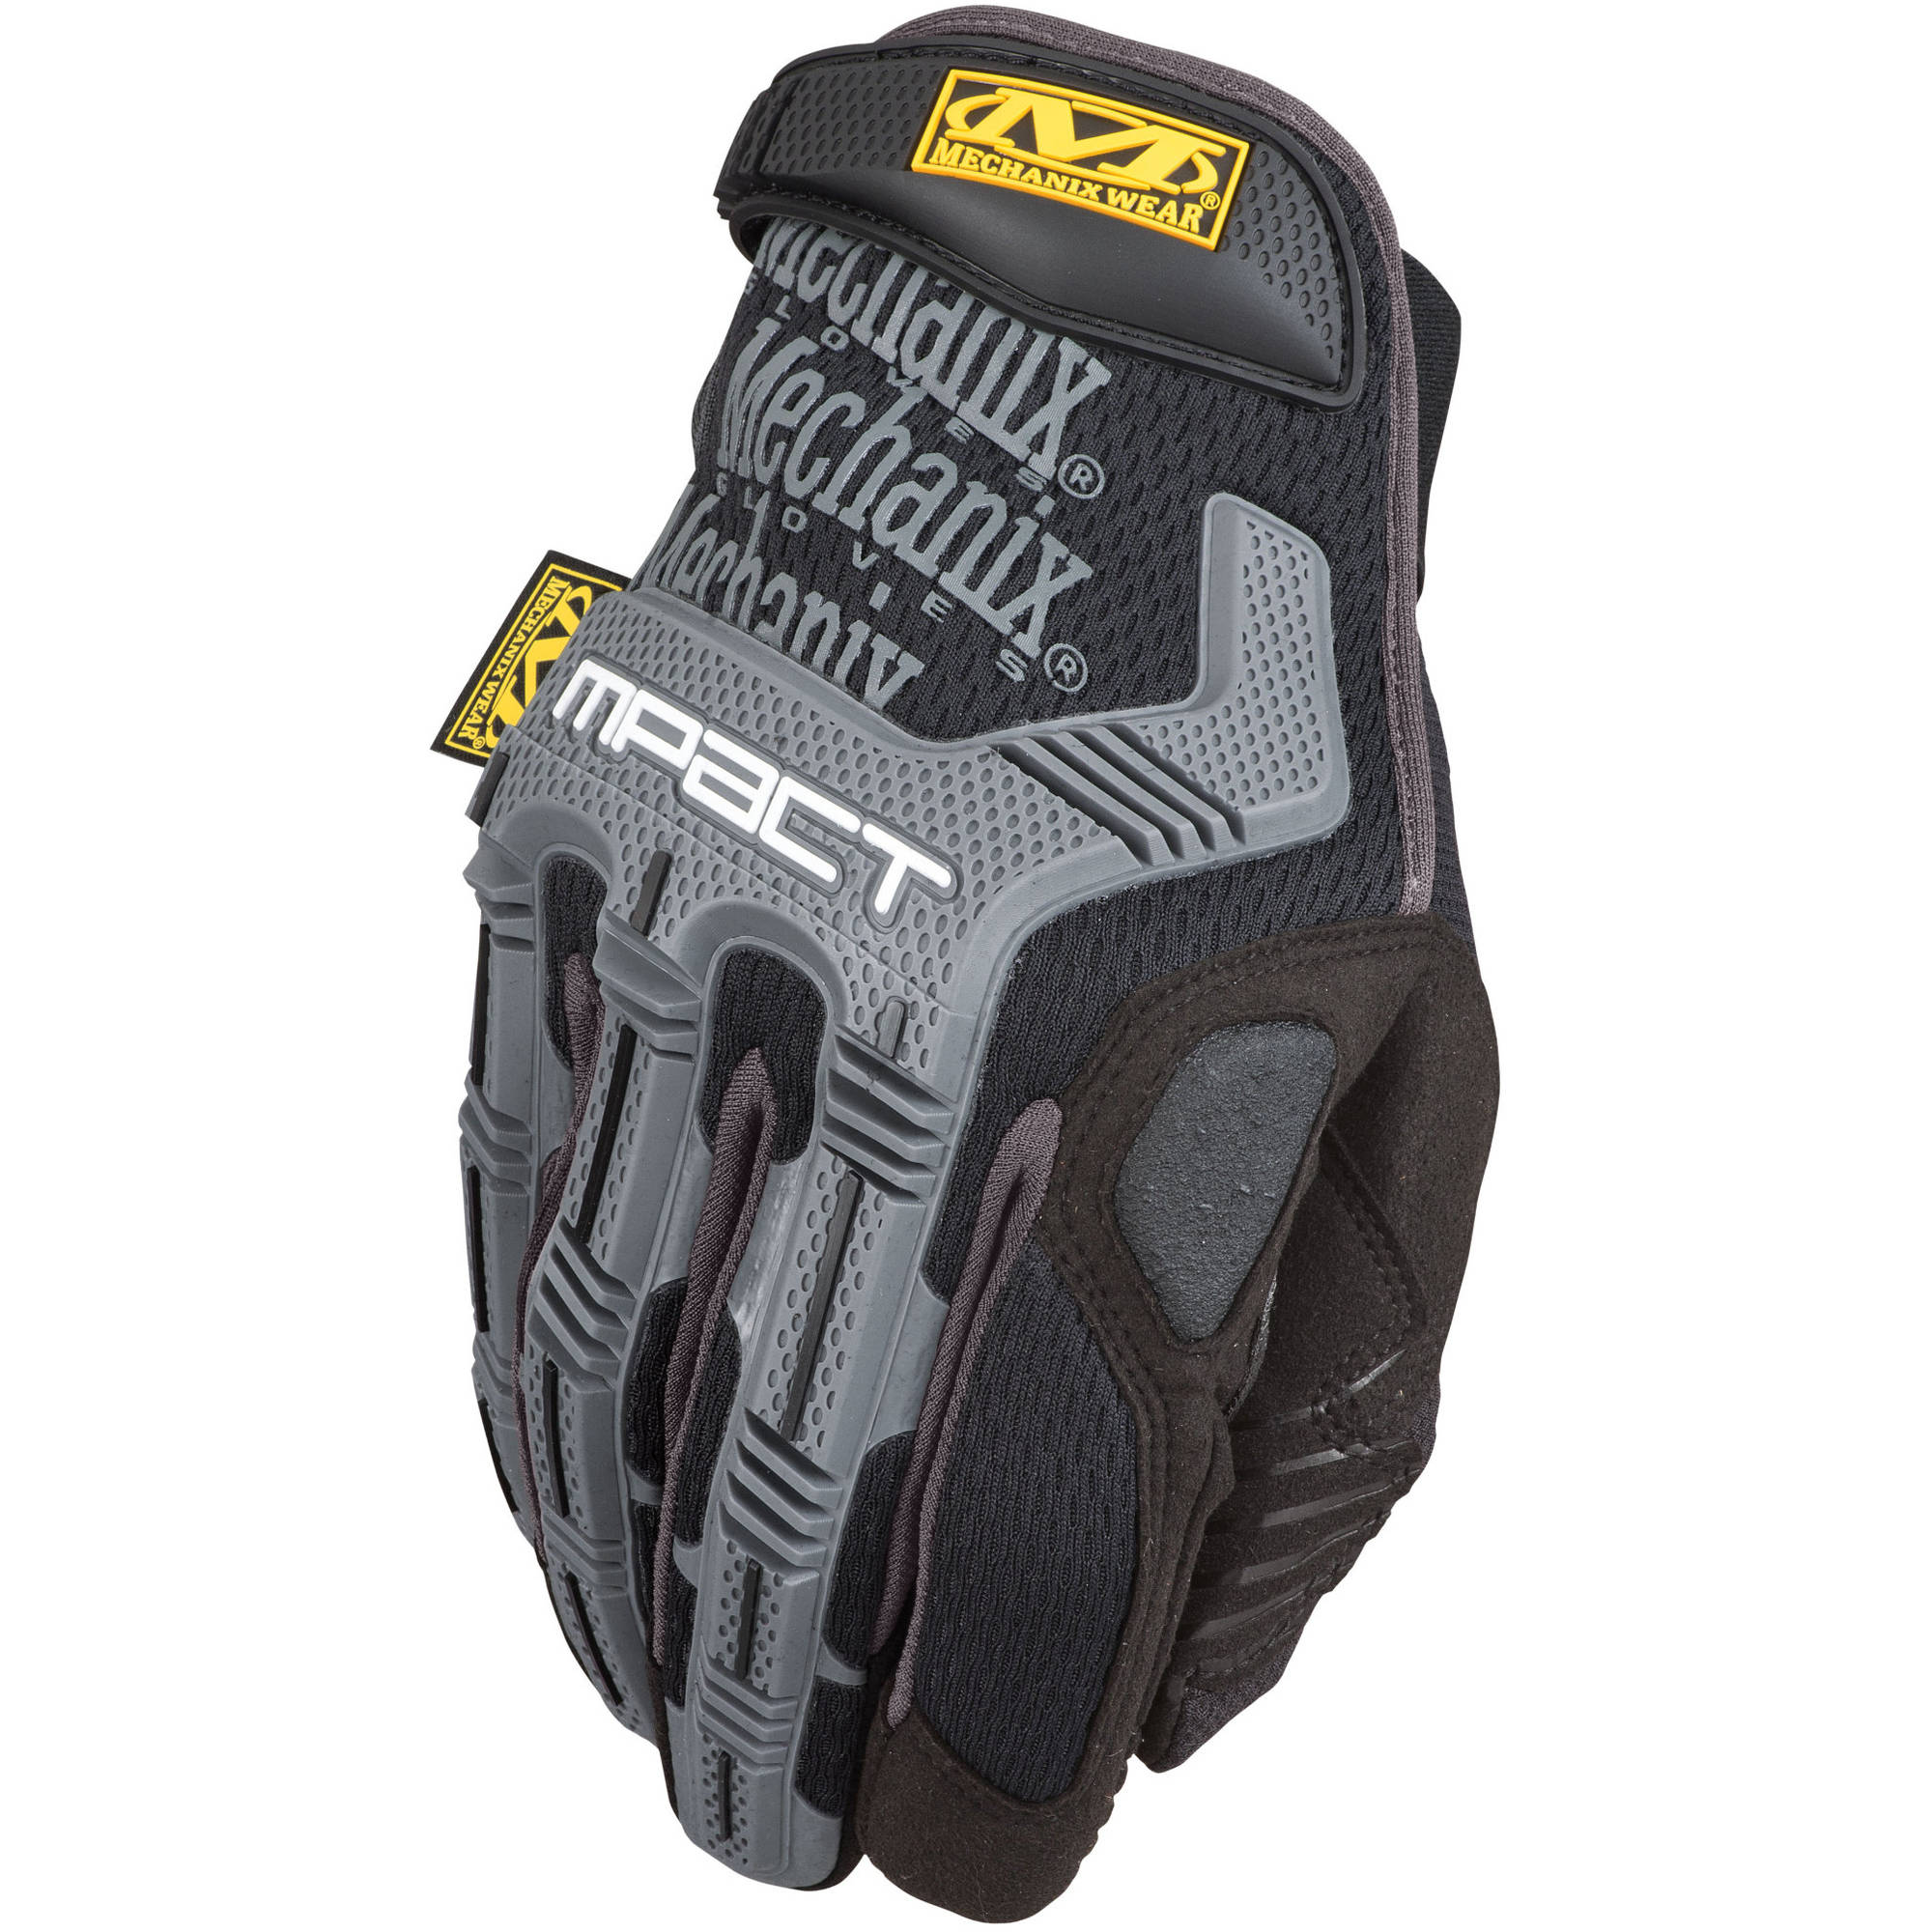 Mechanix Wear - M-Pact Glove, Black